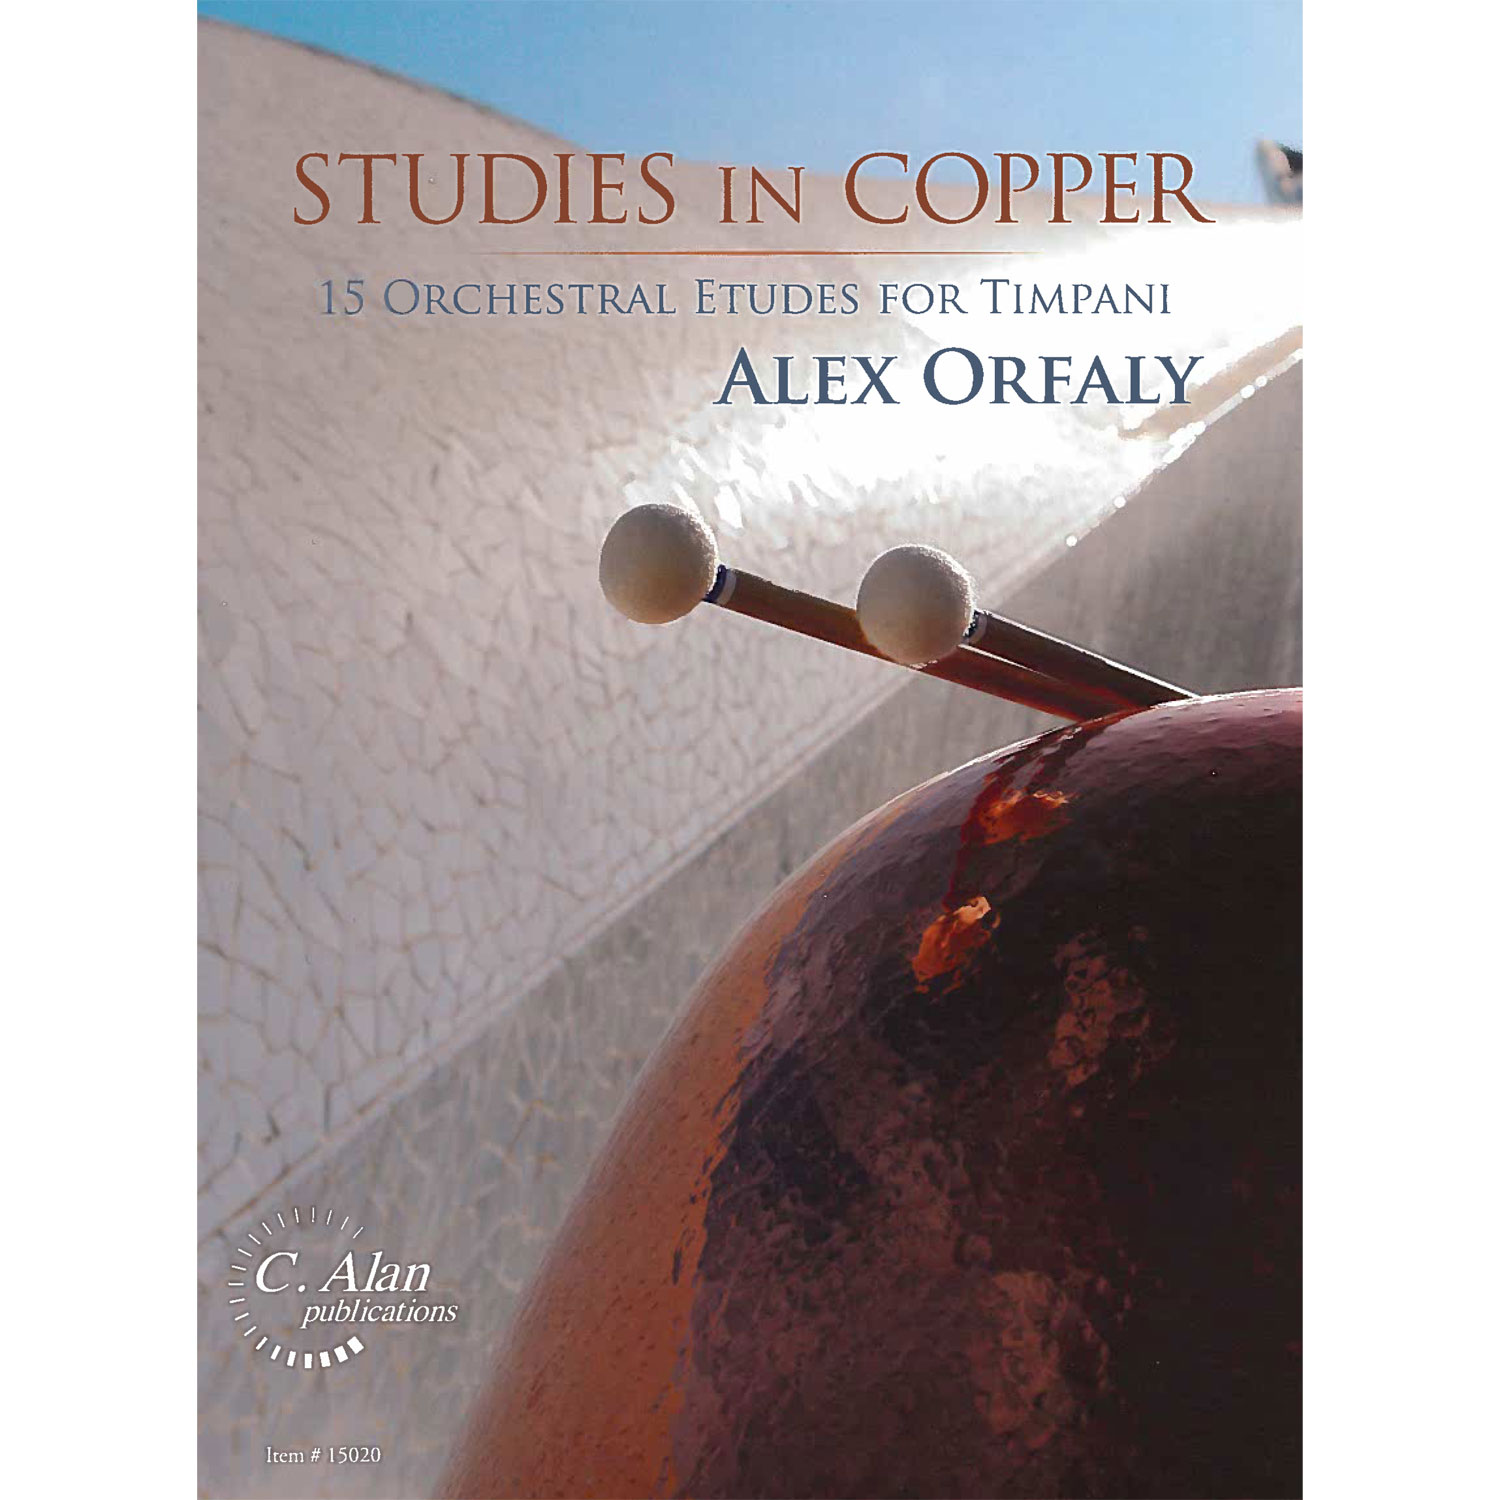 Studies in Copper by Alex Orfaly